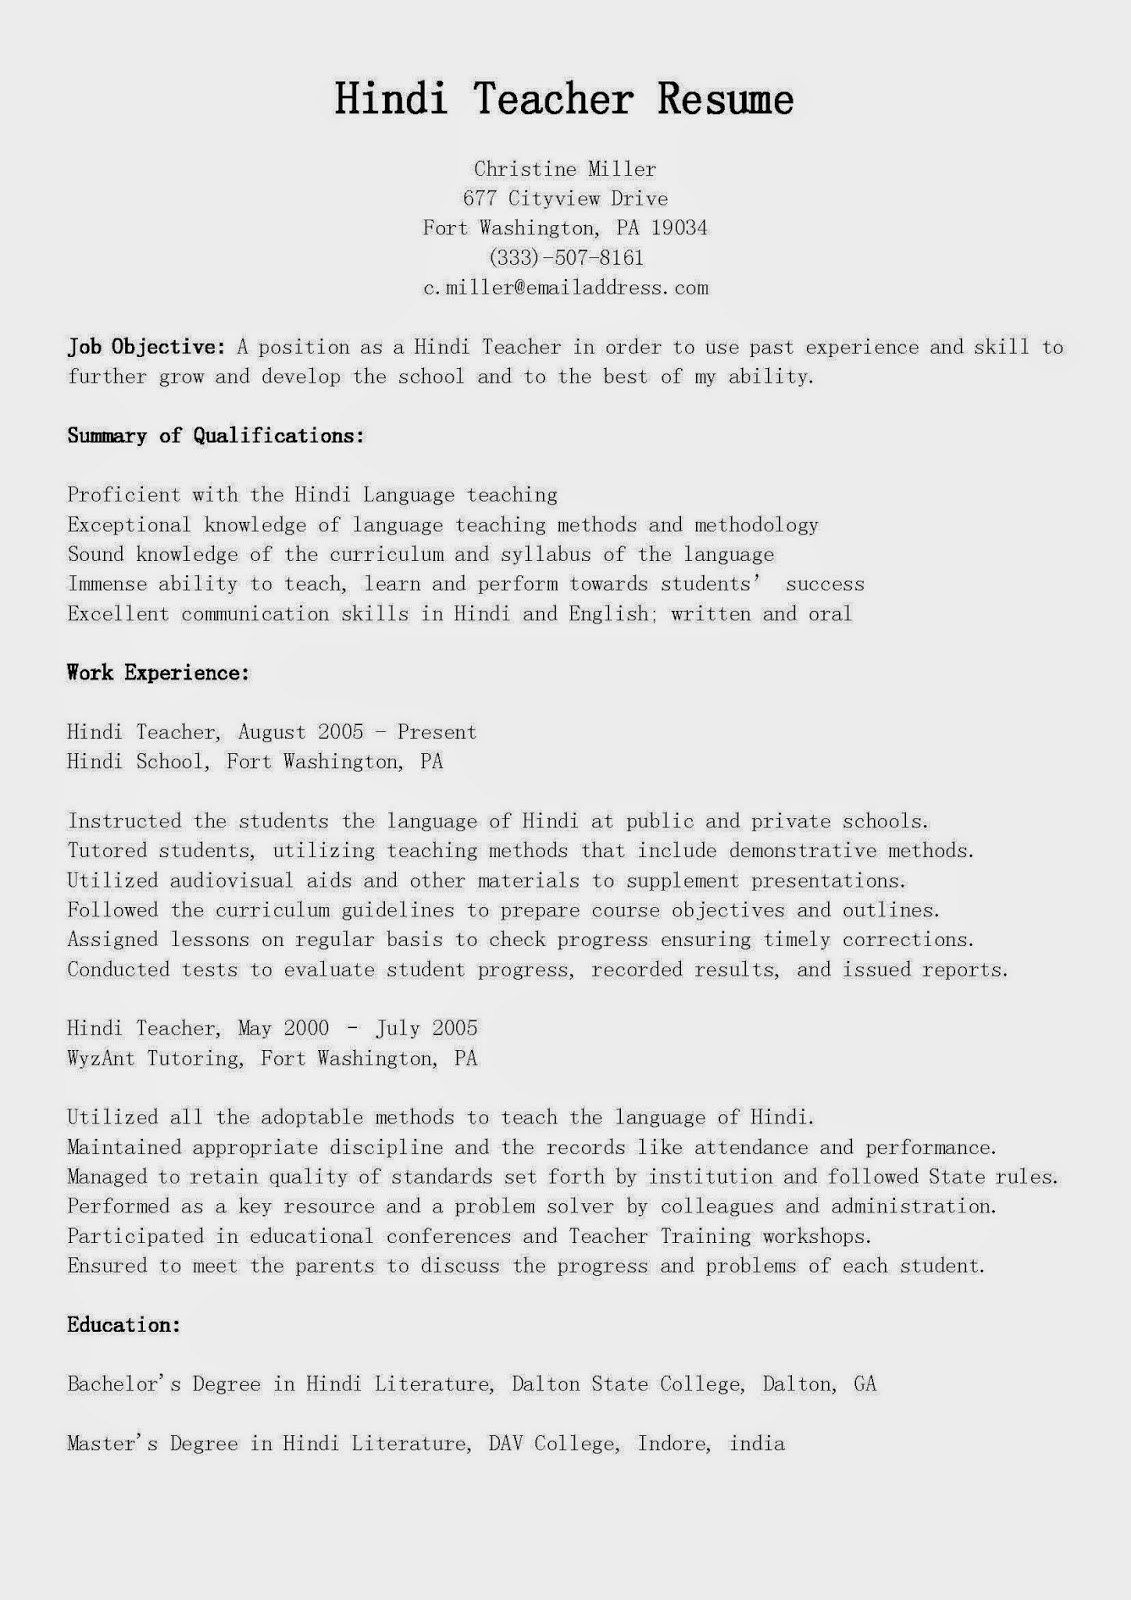 Private School Teacher Resume